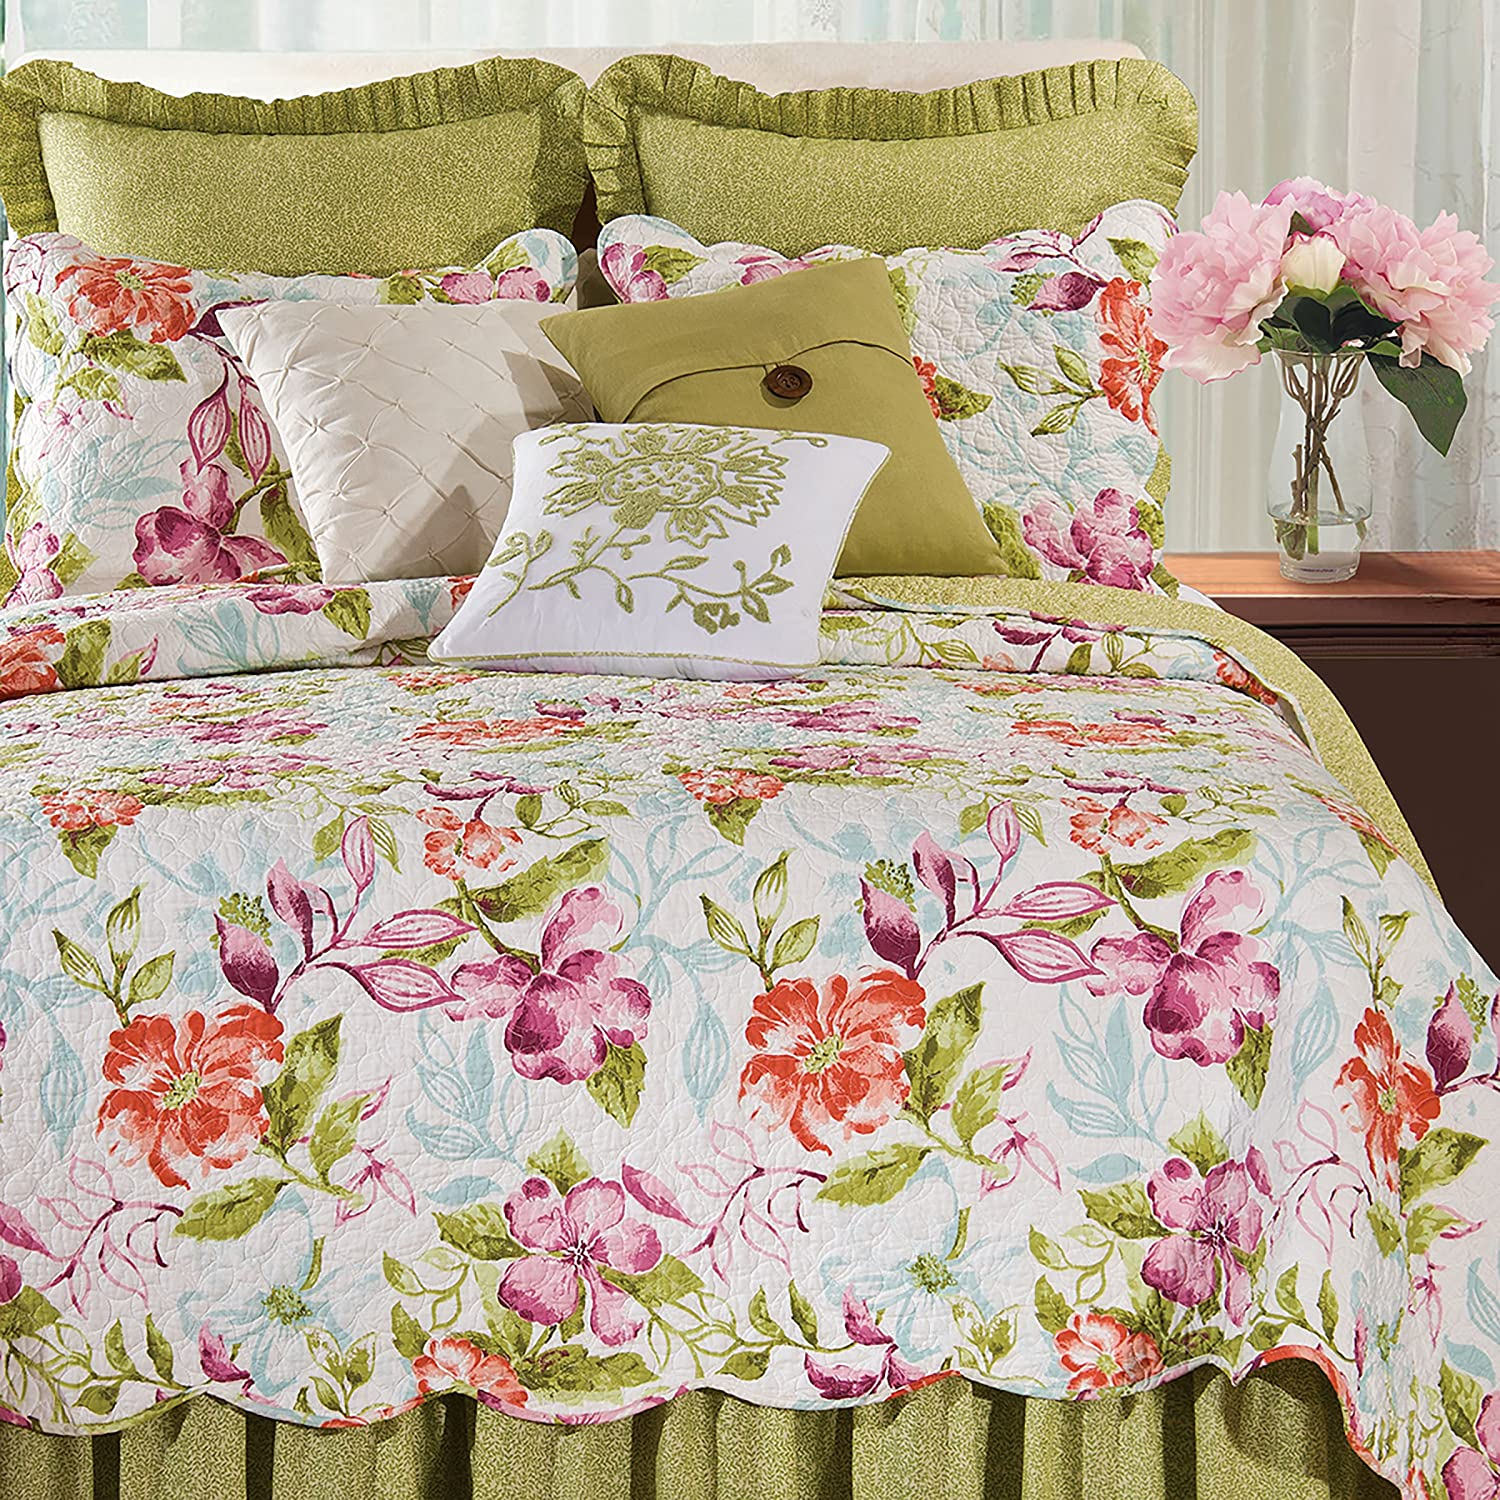 C&F Home Clara 3 Piece Quilt Set All-Season Reversible Bedspread Oversized Bedding Coverlet, Full Queen Size, Green